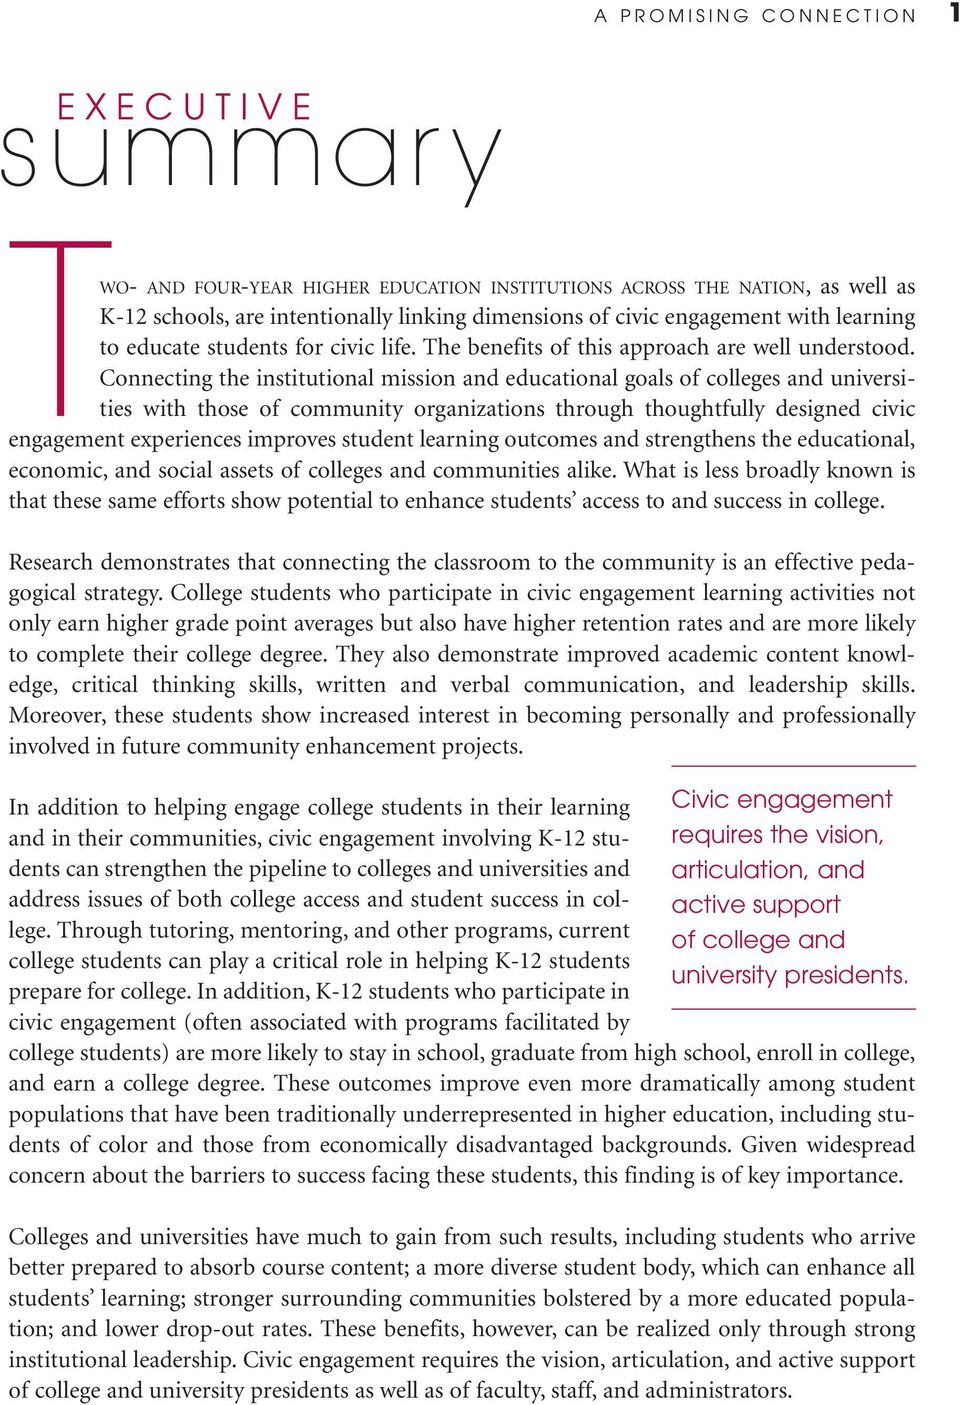 Connecting the institutional mission and educational goals of colleges and universities with those of community organizations through thoughtfully designed civic engagement experiences improves